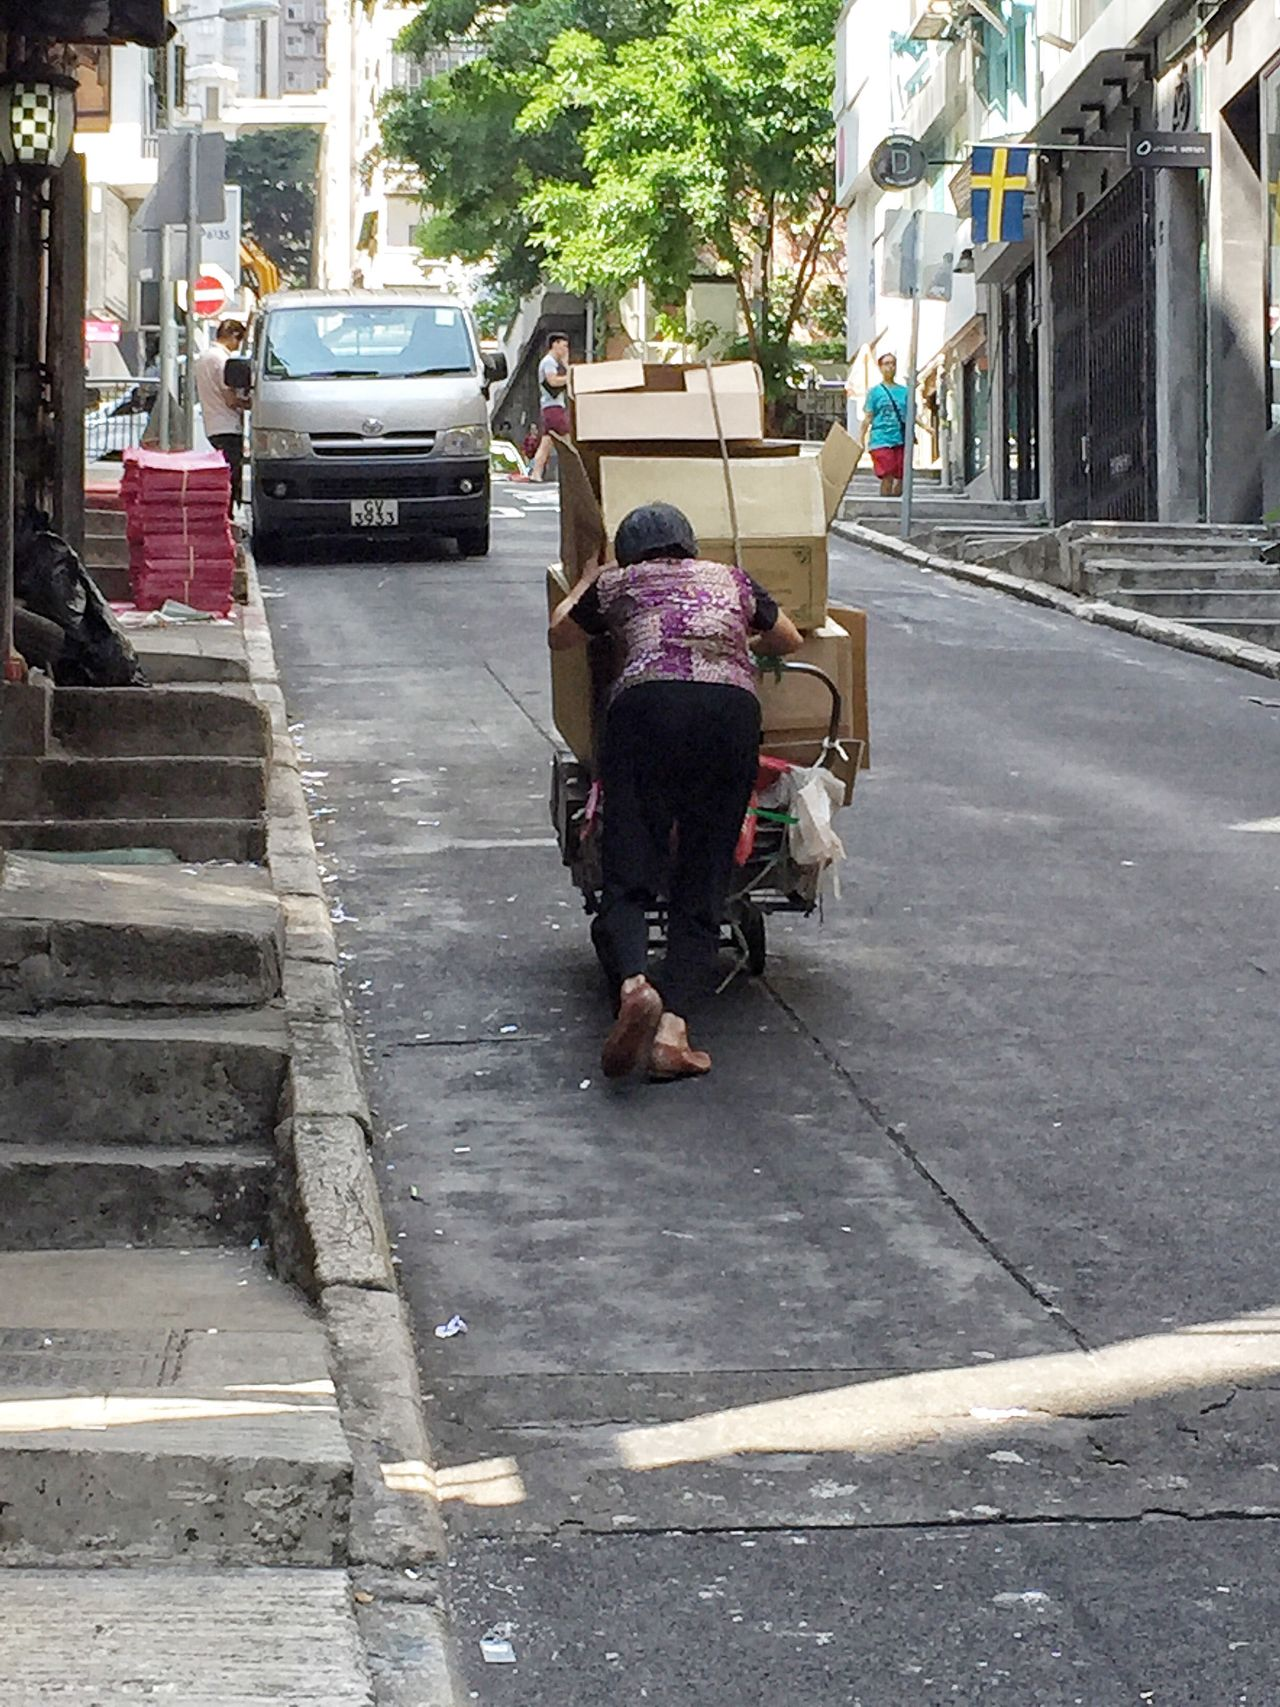 I admired this strong older woman pushing a cart up the road along Aberdeen Street in Central HongKong. This is just an ordinary sight in HongKong and I almost helped her Street City Women Around The World Woman Power Woman At Work WomaninBusiness Woman Of EyeEm The Street Photographer - 2017 EyeEm Awards Eyeemphotography Eyeem Market Eyeem Photography